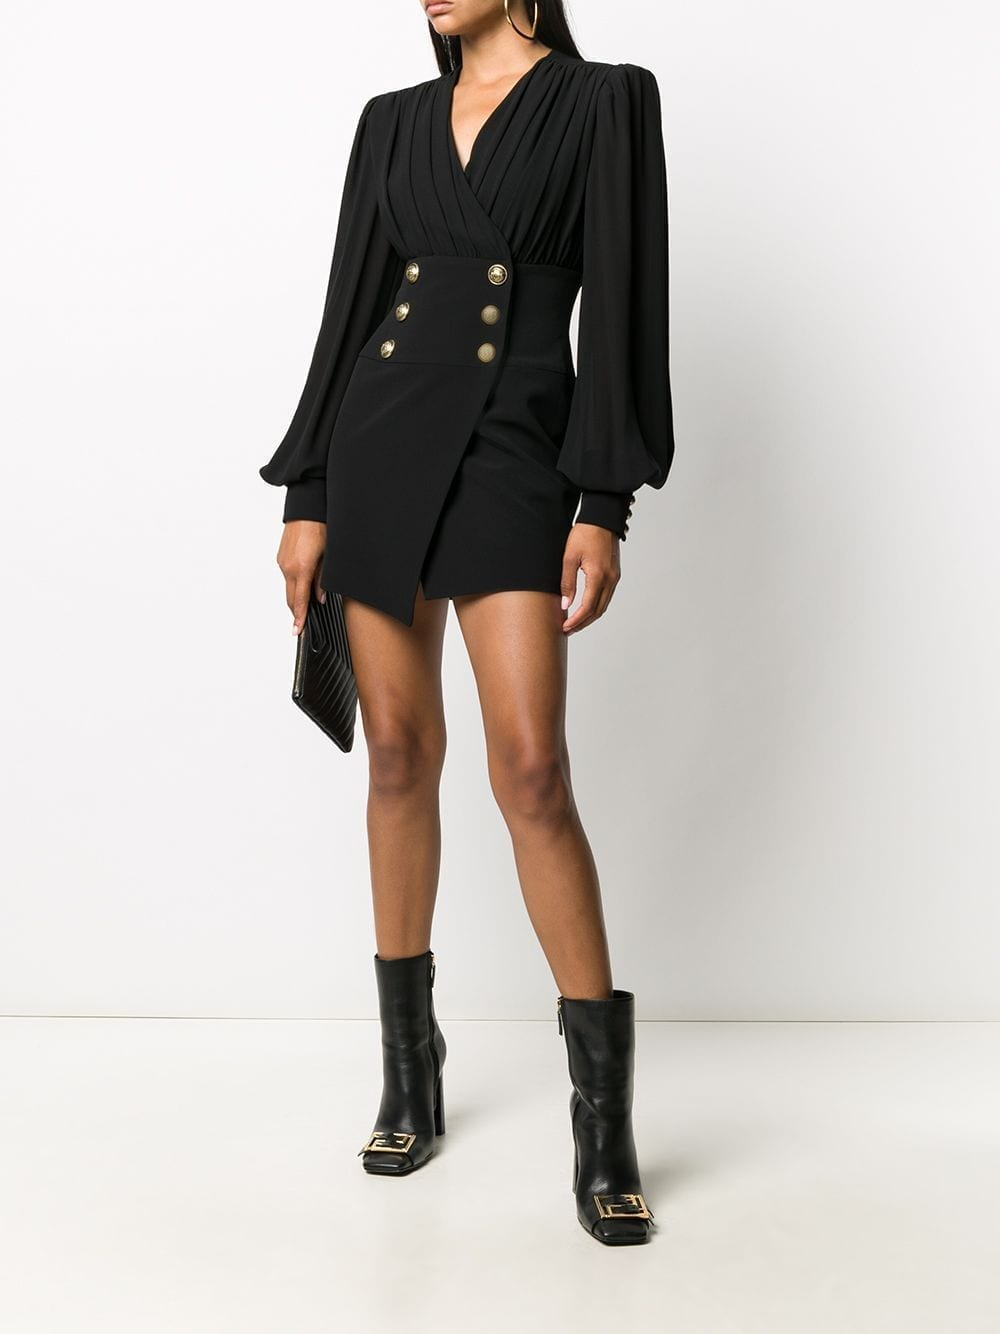 BALMAIN Decorative Button Short Dress